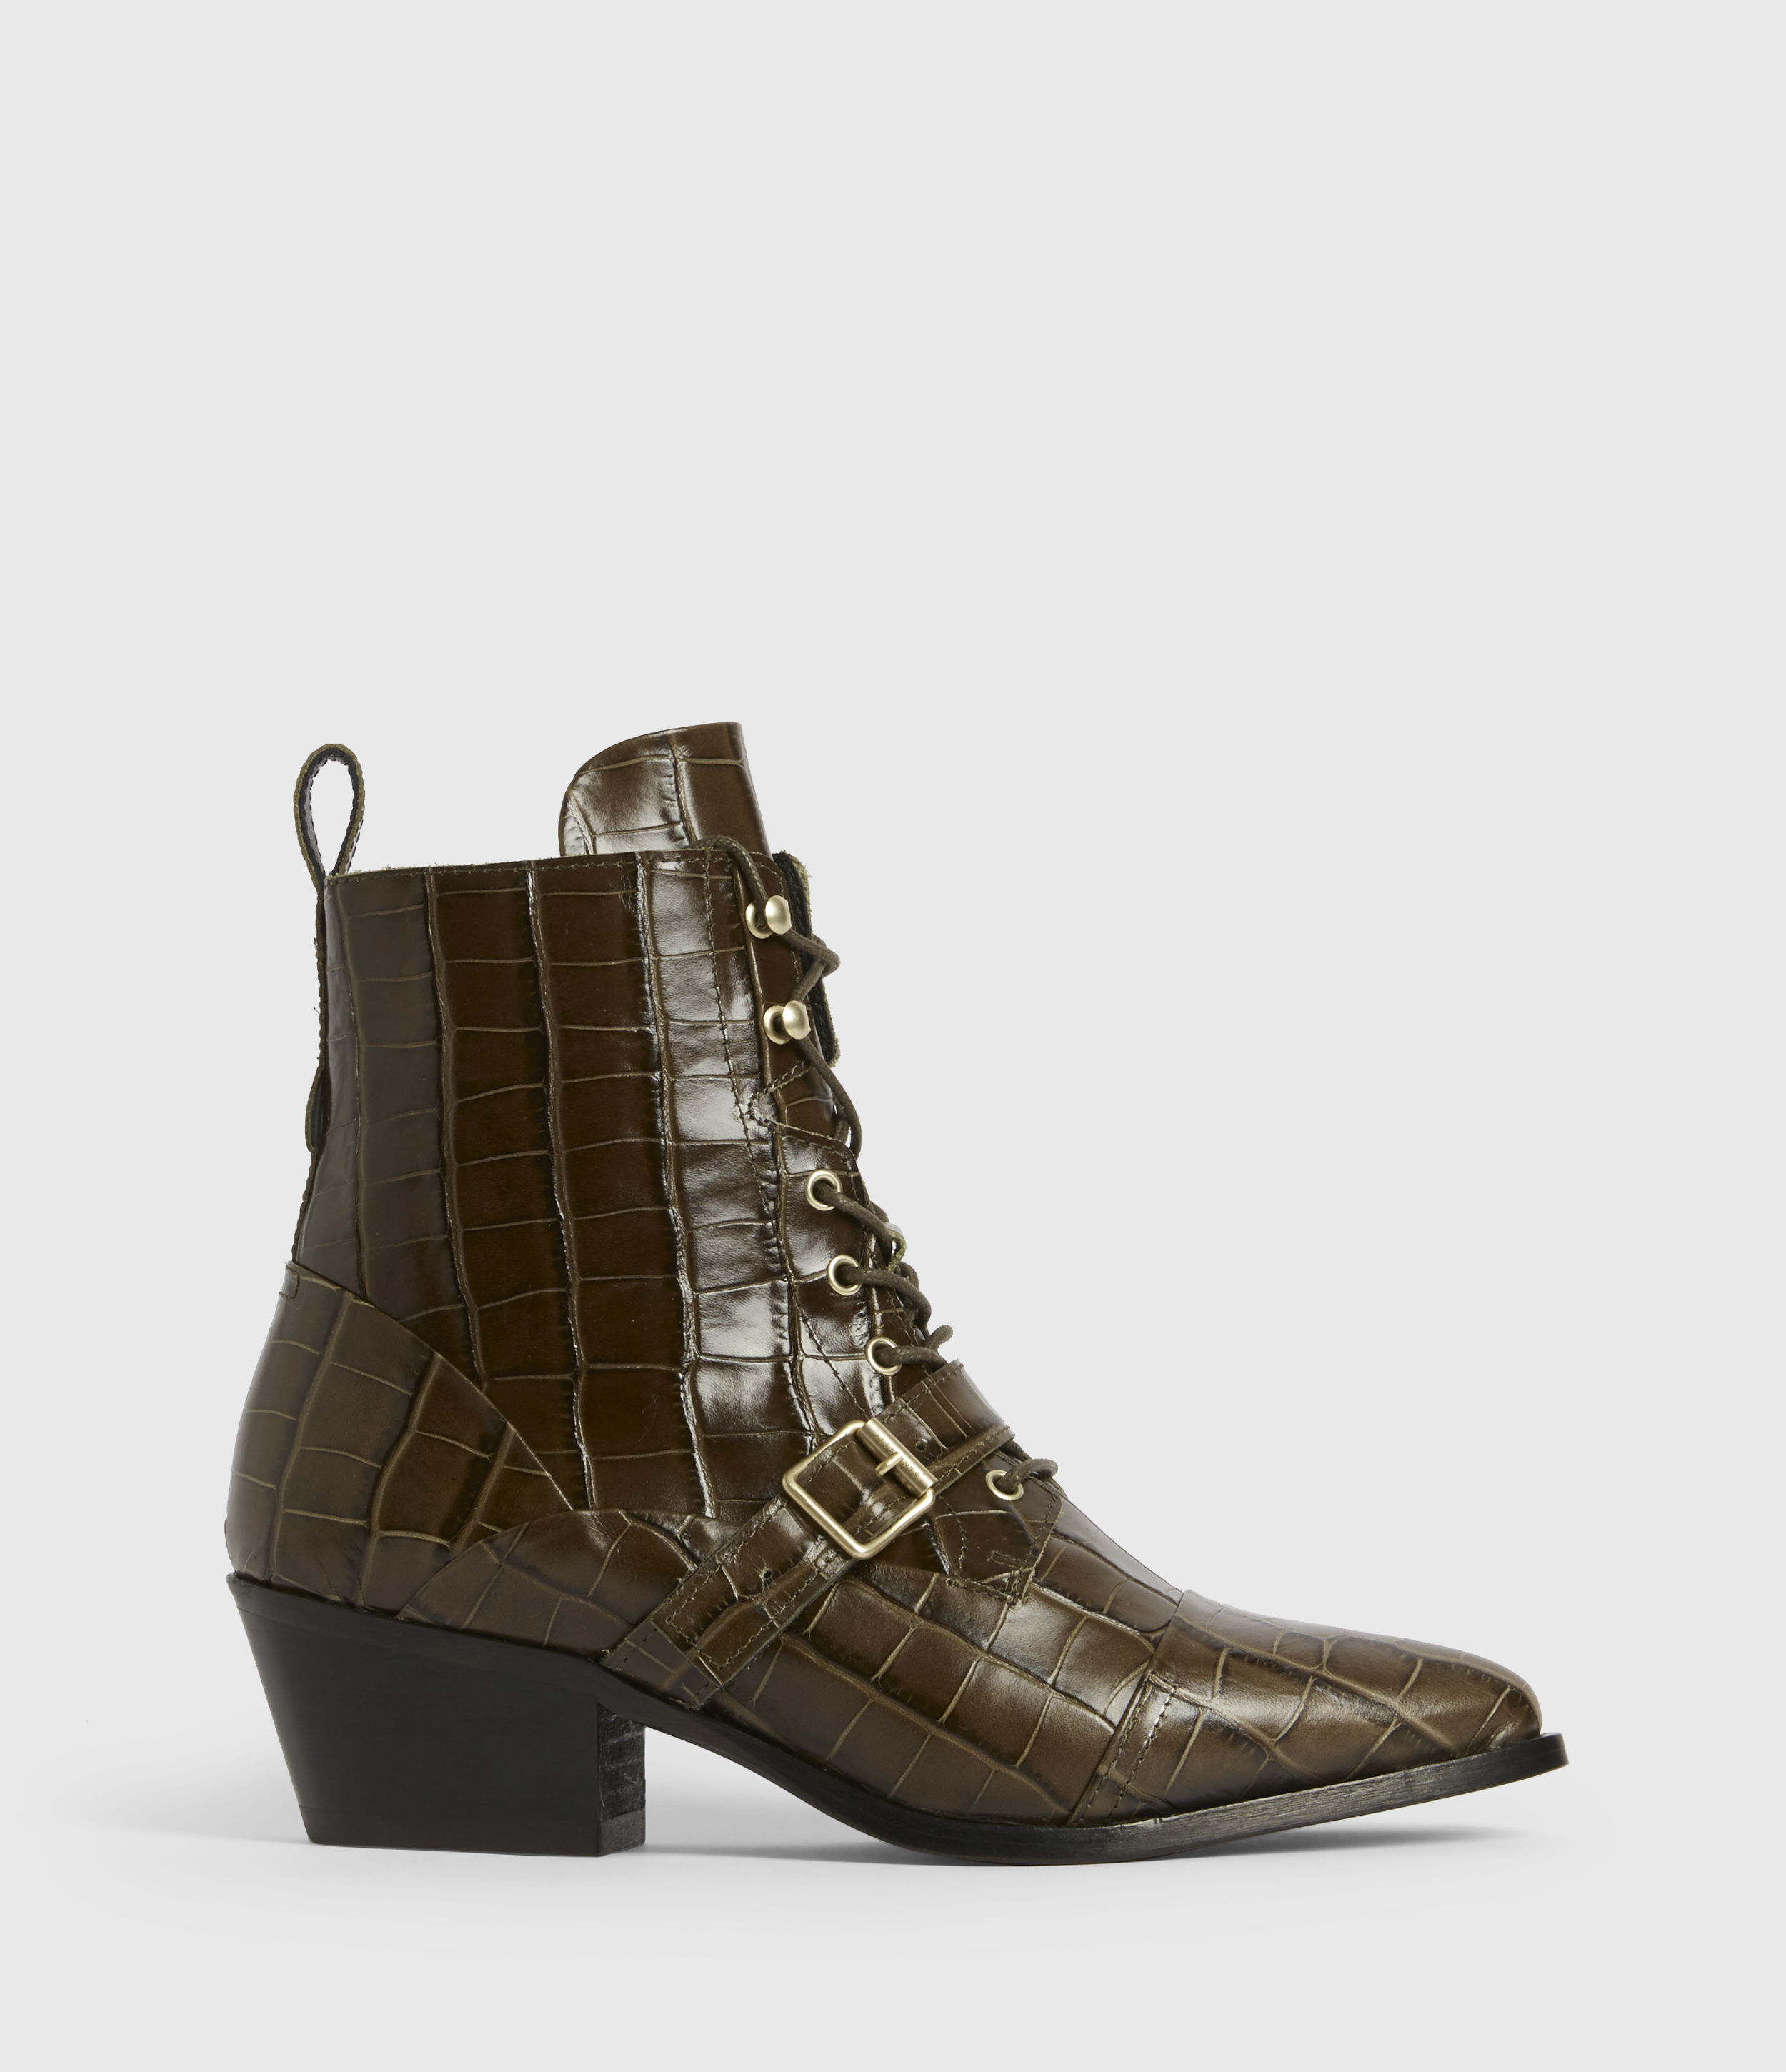 AllSaints Katy Leather Boots